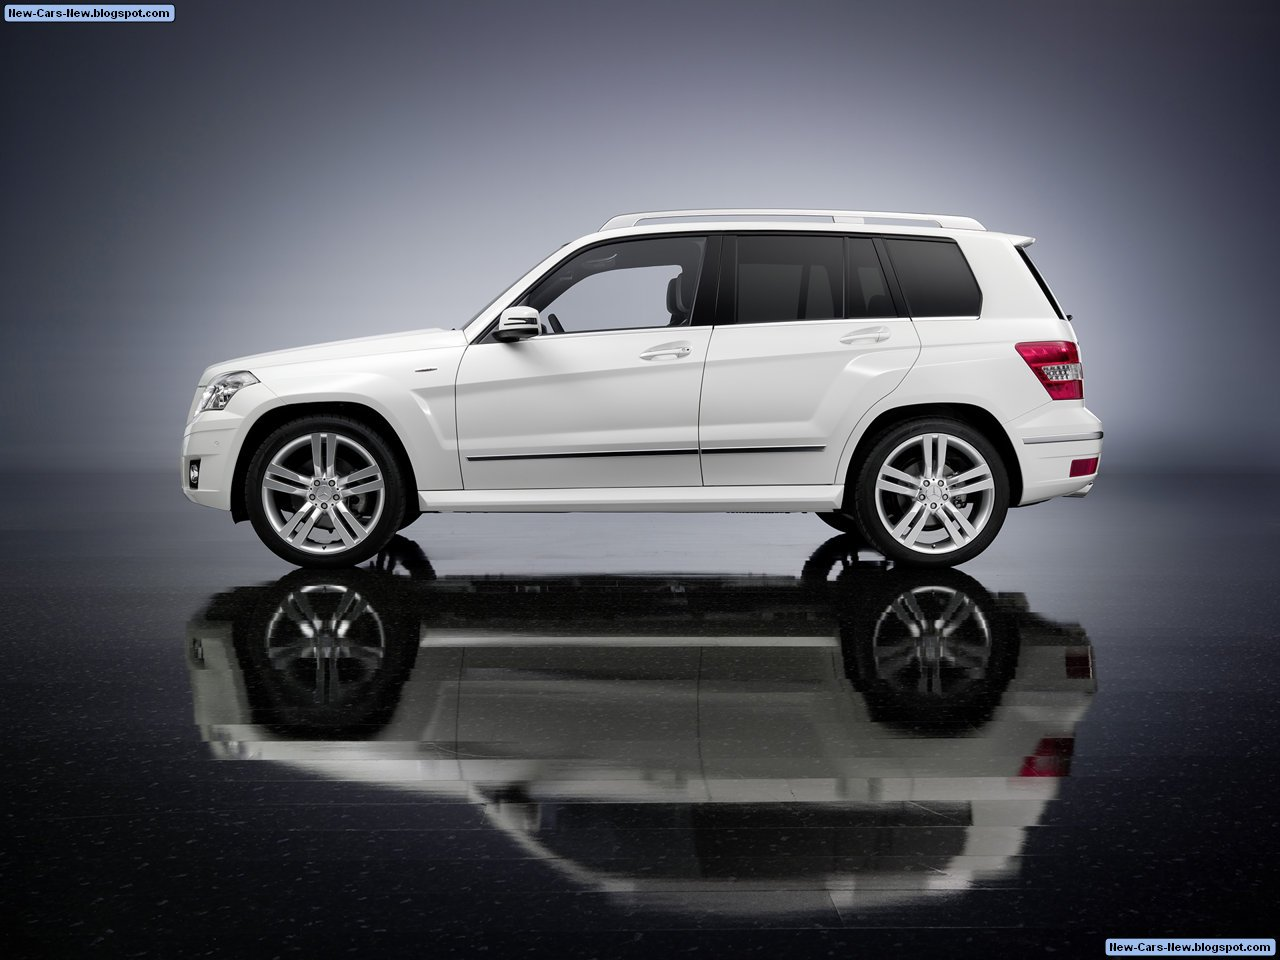 2018 mercedes benz glk 350 4matic car photos catalog 2018 for Mercedes benz car picture gallery